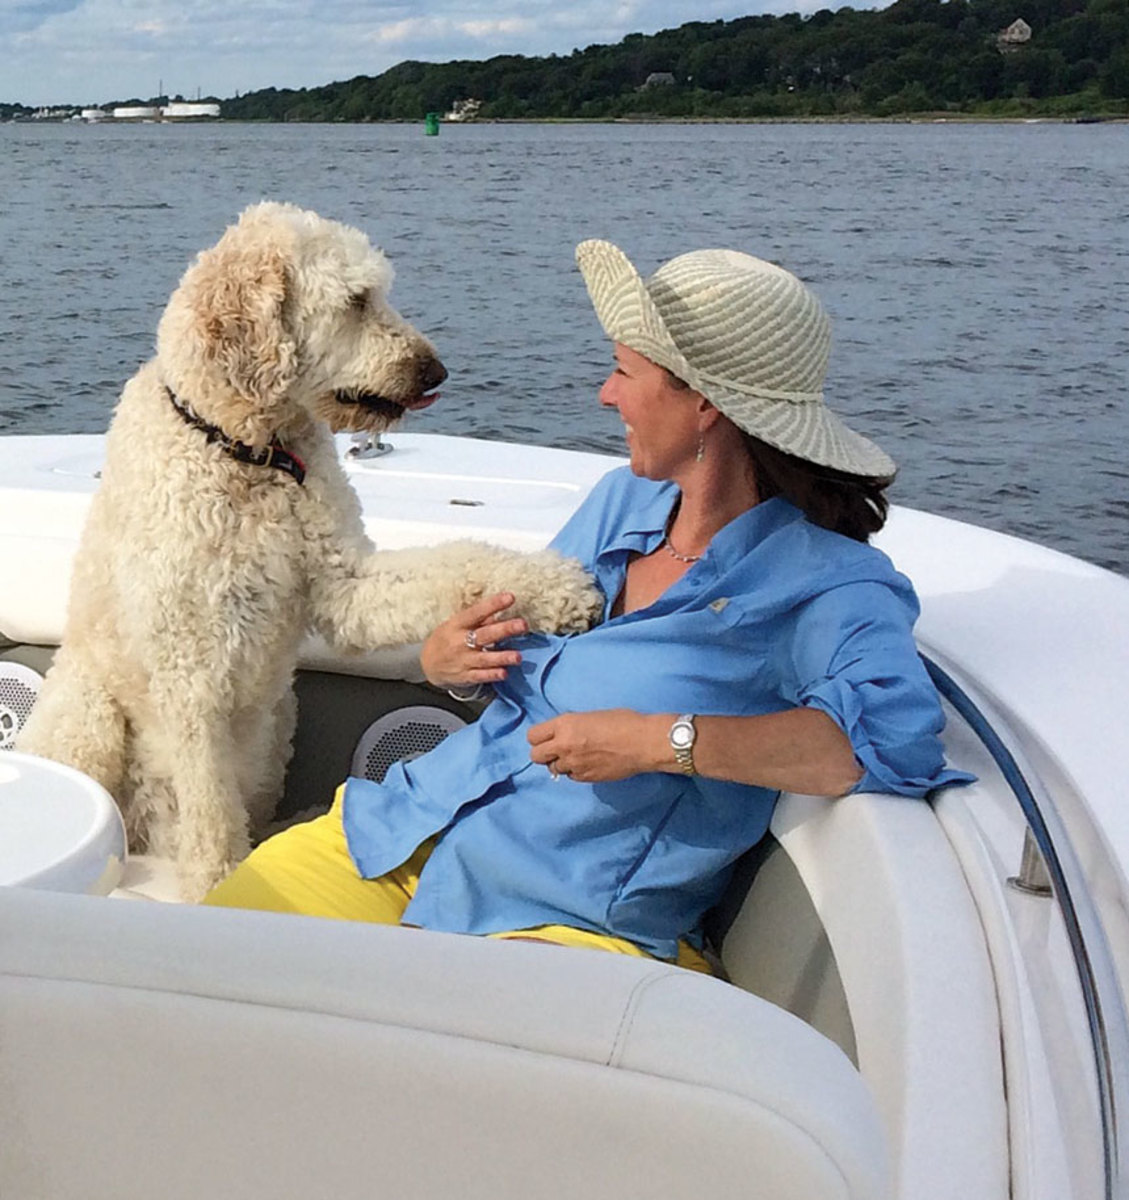 In a rare moment of free time, Mackie enjoys the company of her friend's dog Frisco on a Freedom Boat Club outing.